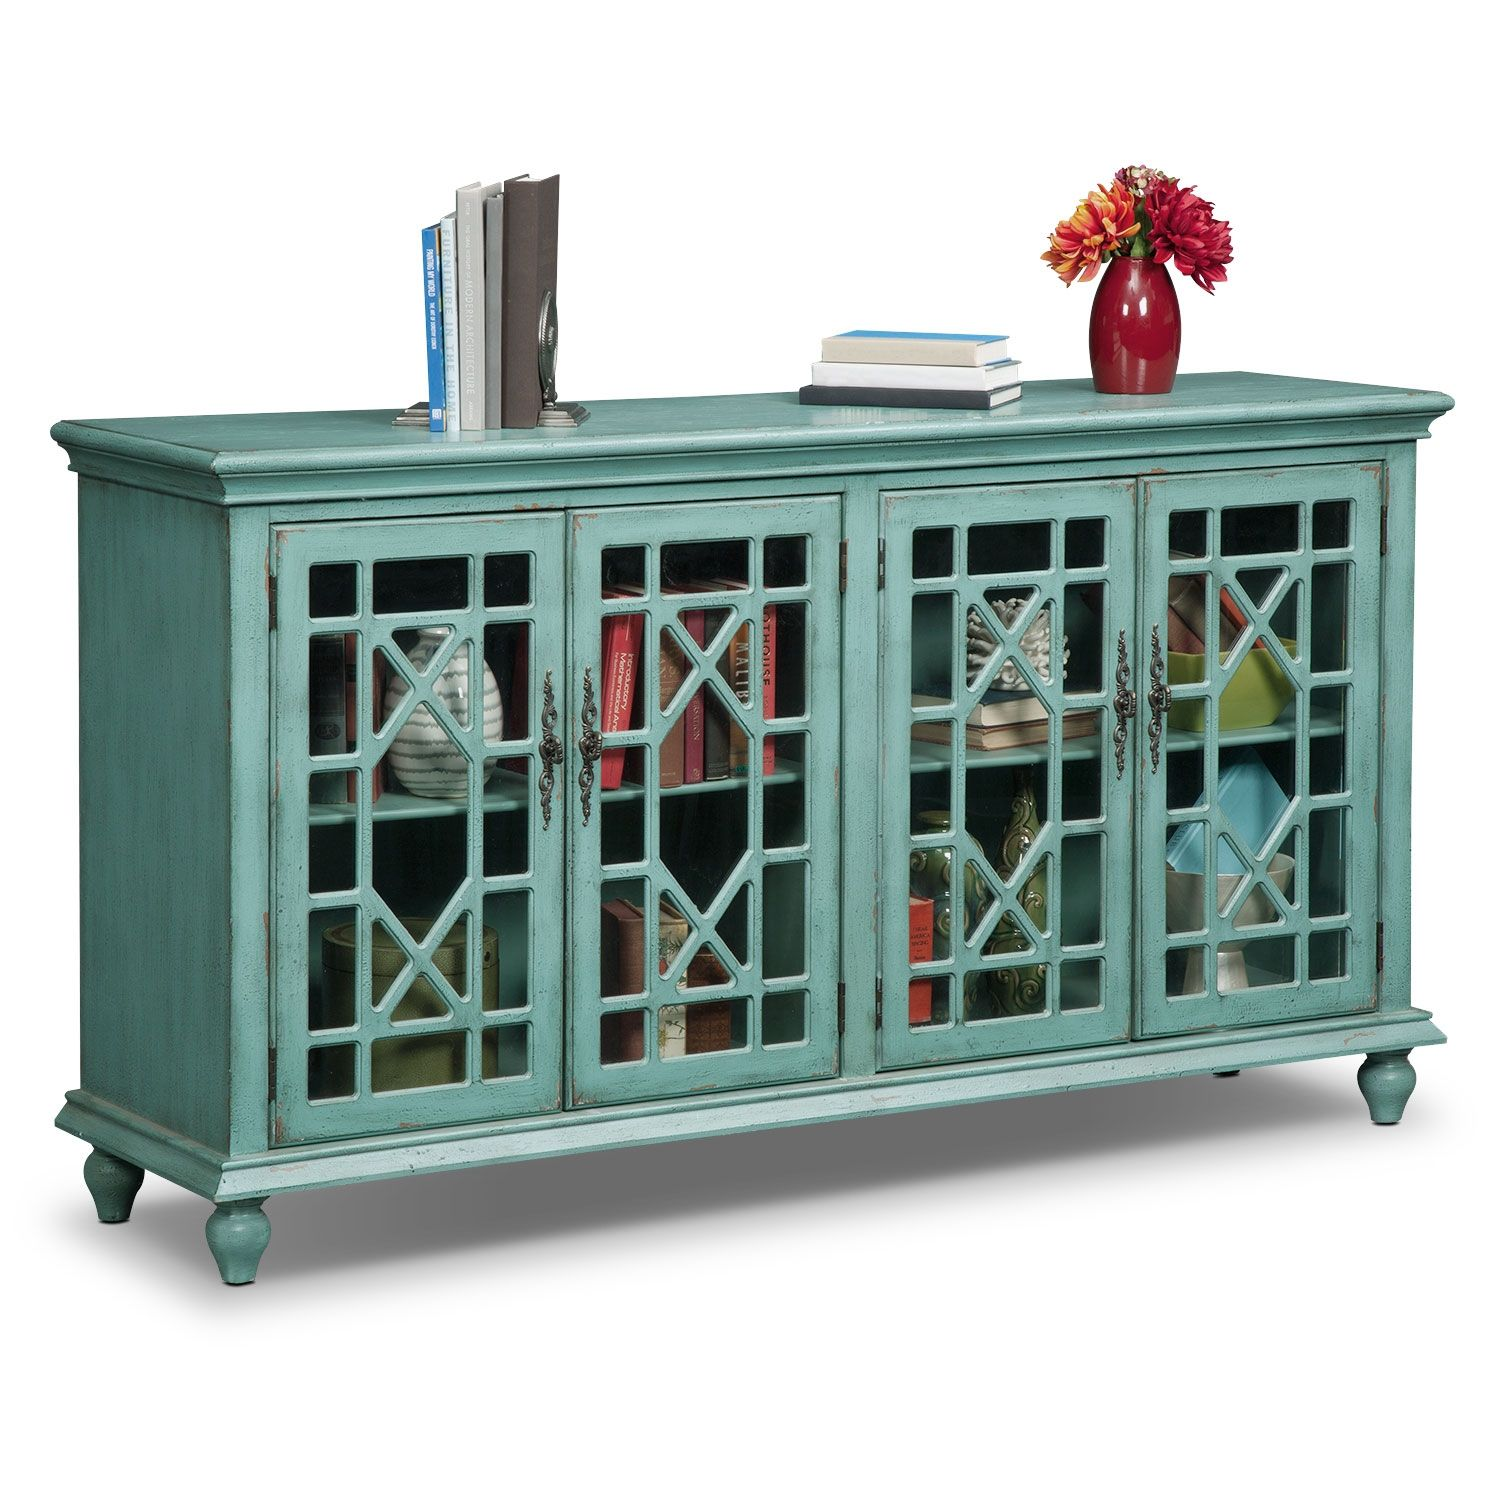 grenoble media credenza teal sam and jeff new house pinterest credenza furniture and room. Black Bedroom Furniture Sets. Home Design Ideas